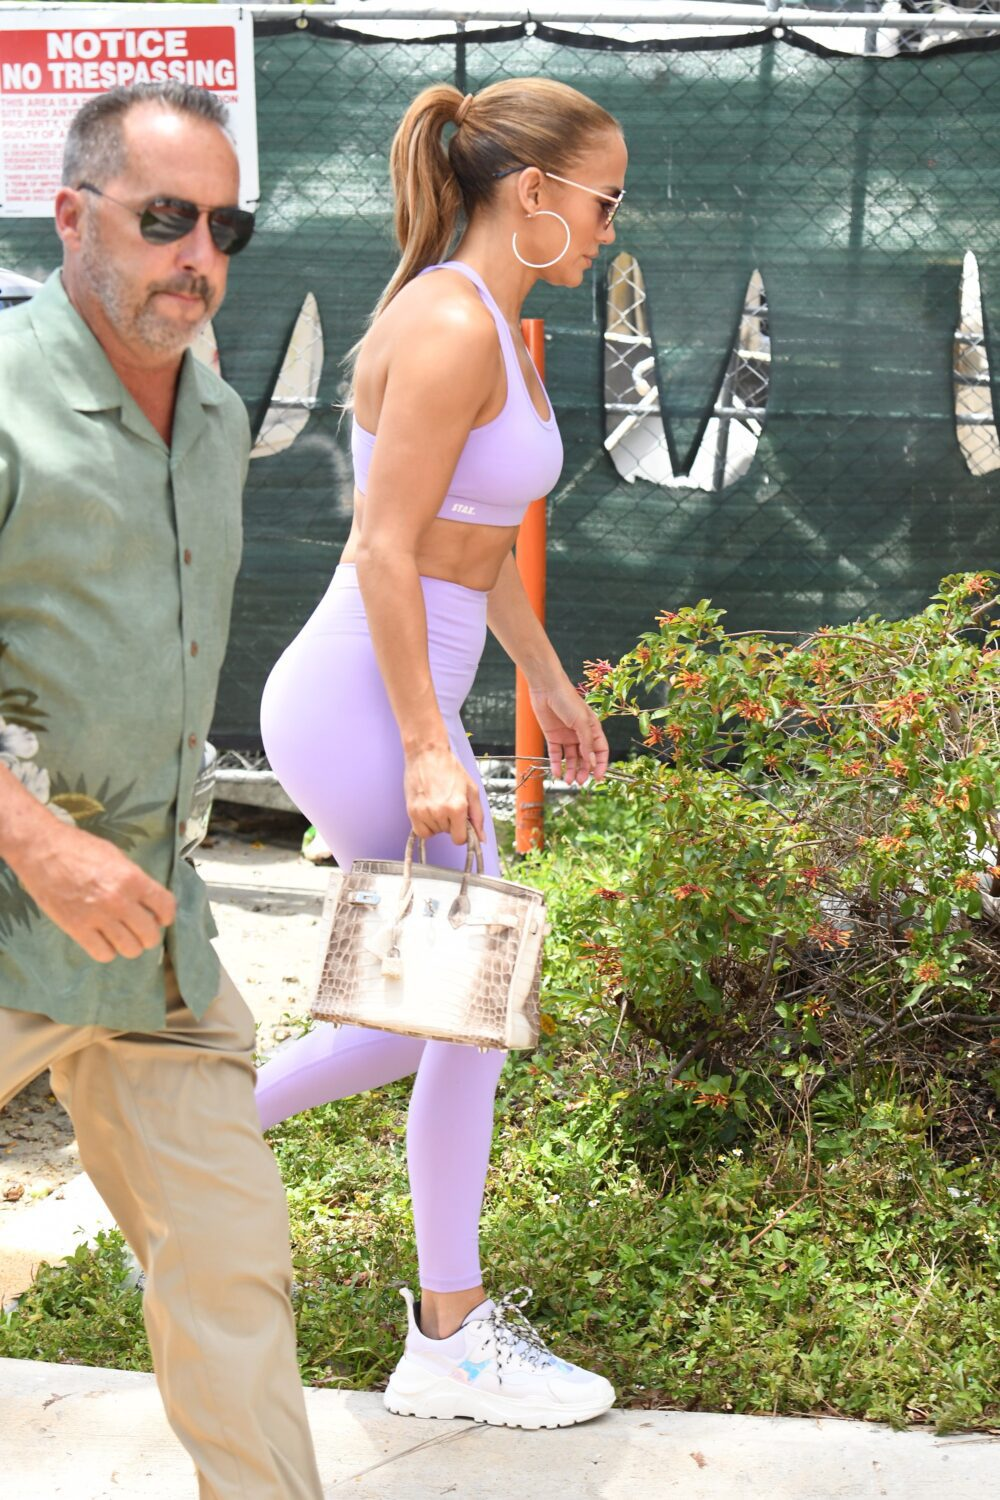 Jennifer Lopez wears a purple outfit and designer bag as she hits the gym in Miami